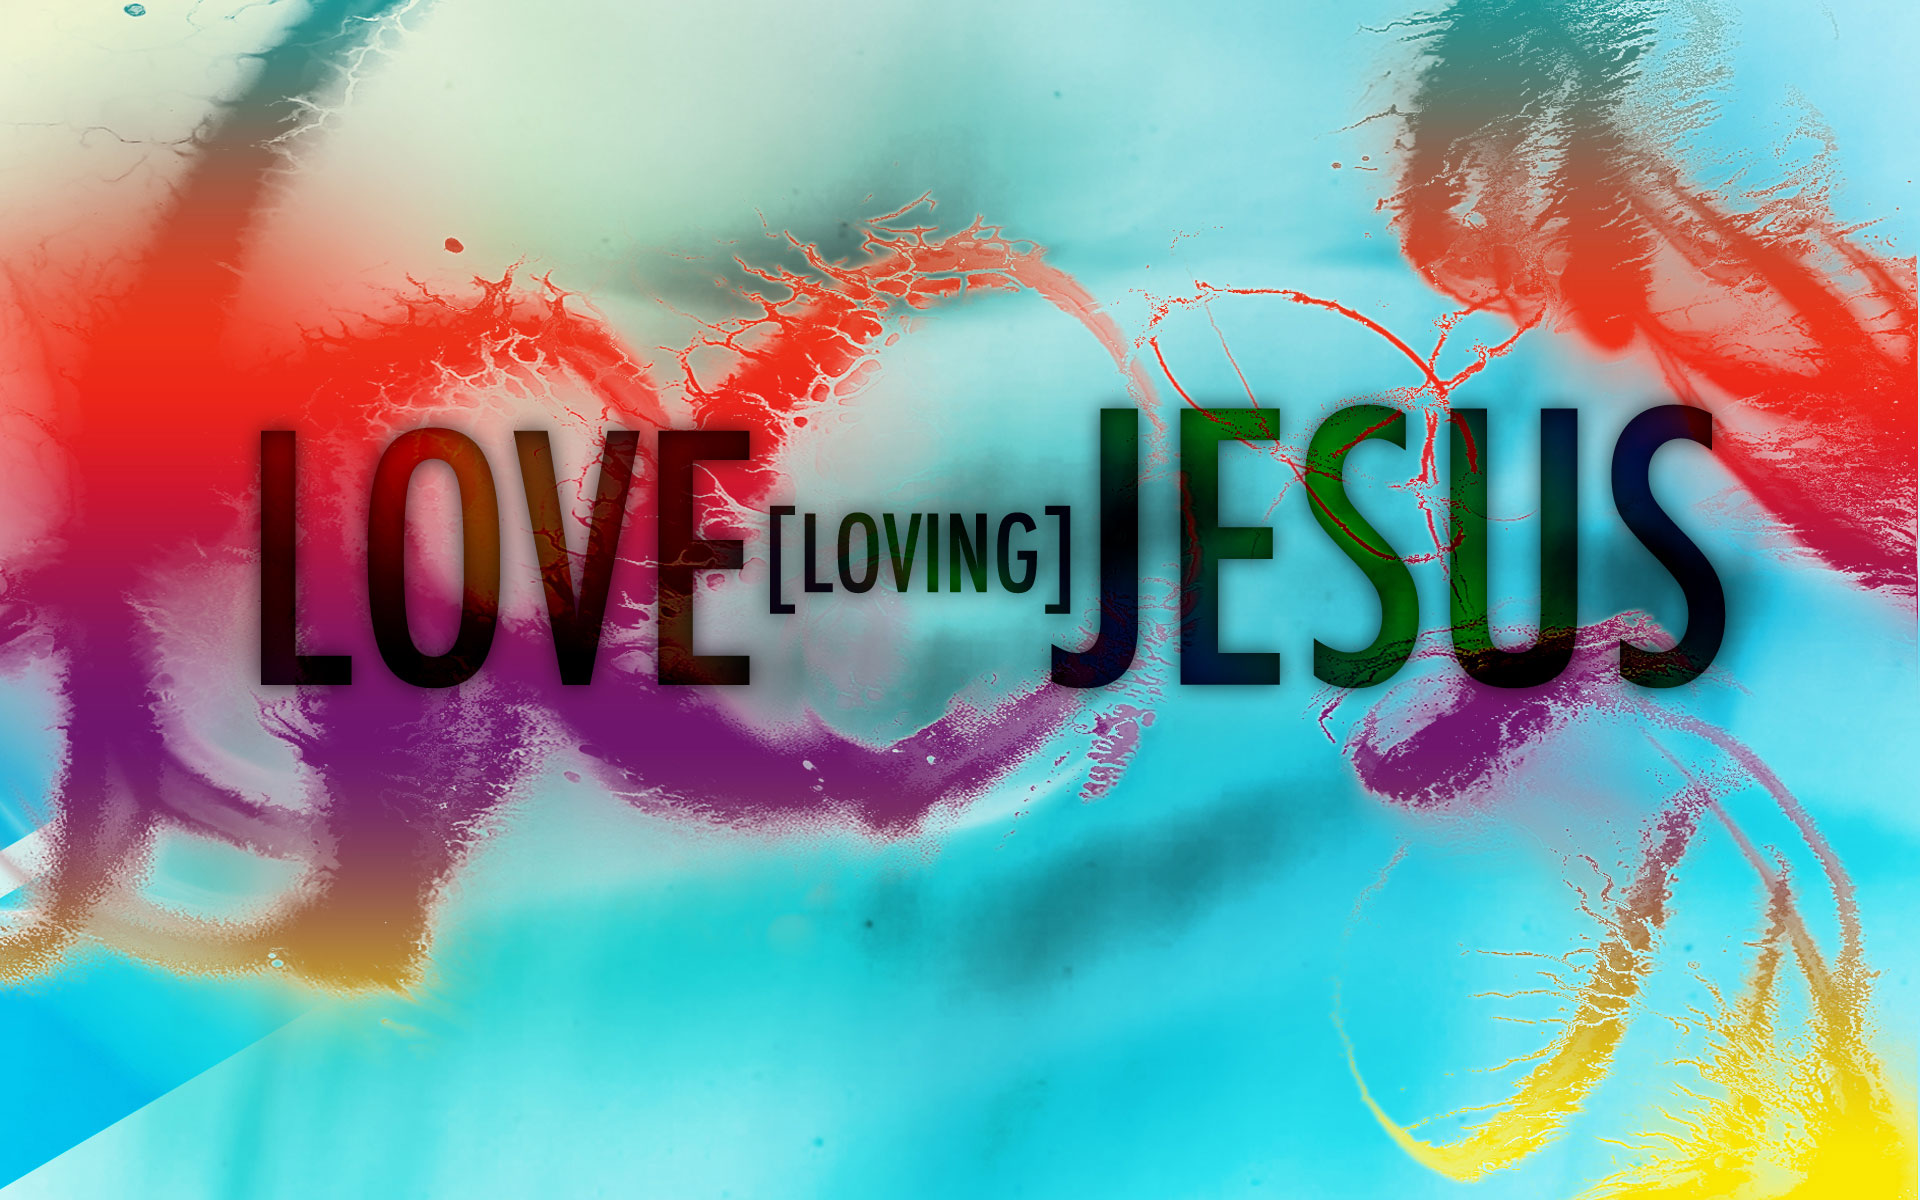 Love Loving Jesus Wallpaper : Wallpapers cristianos juveniles - Imagui